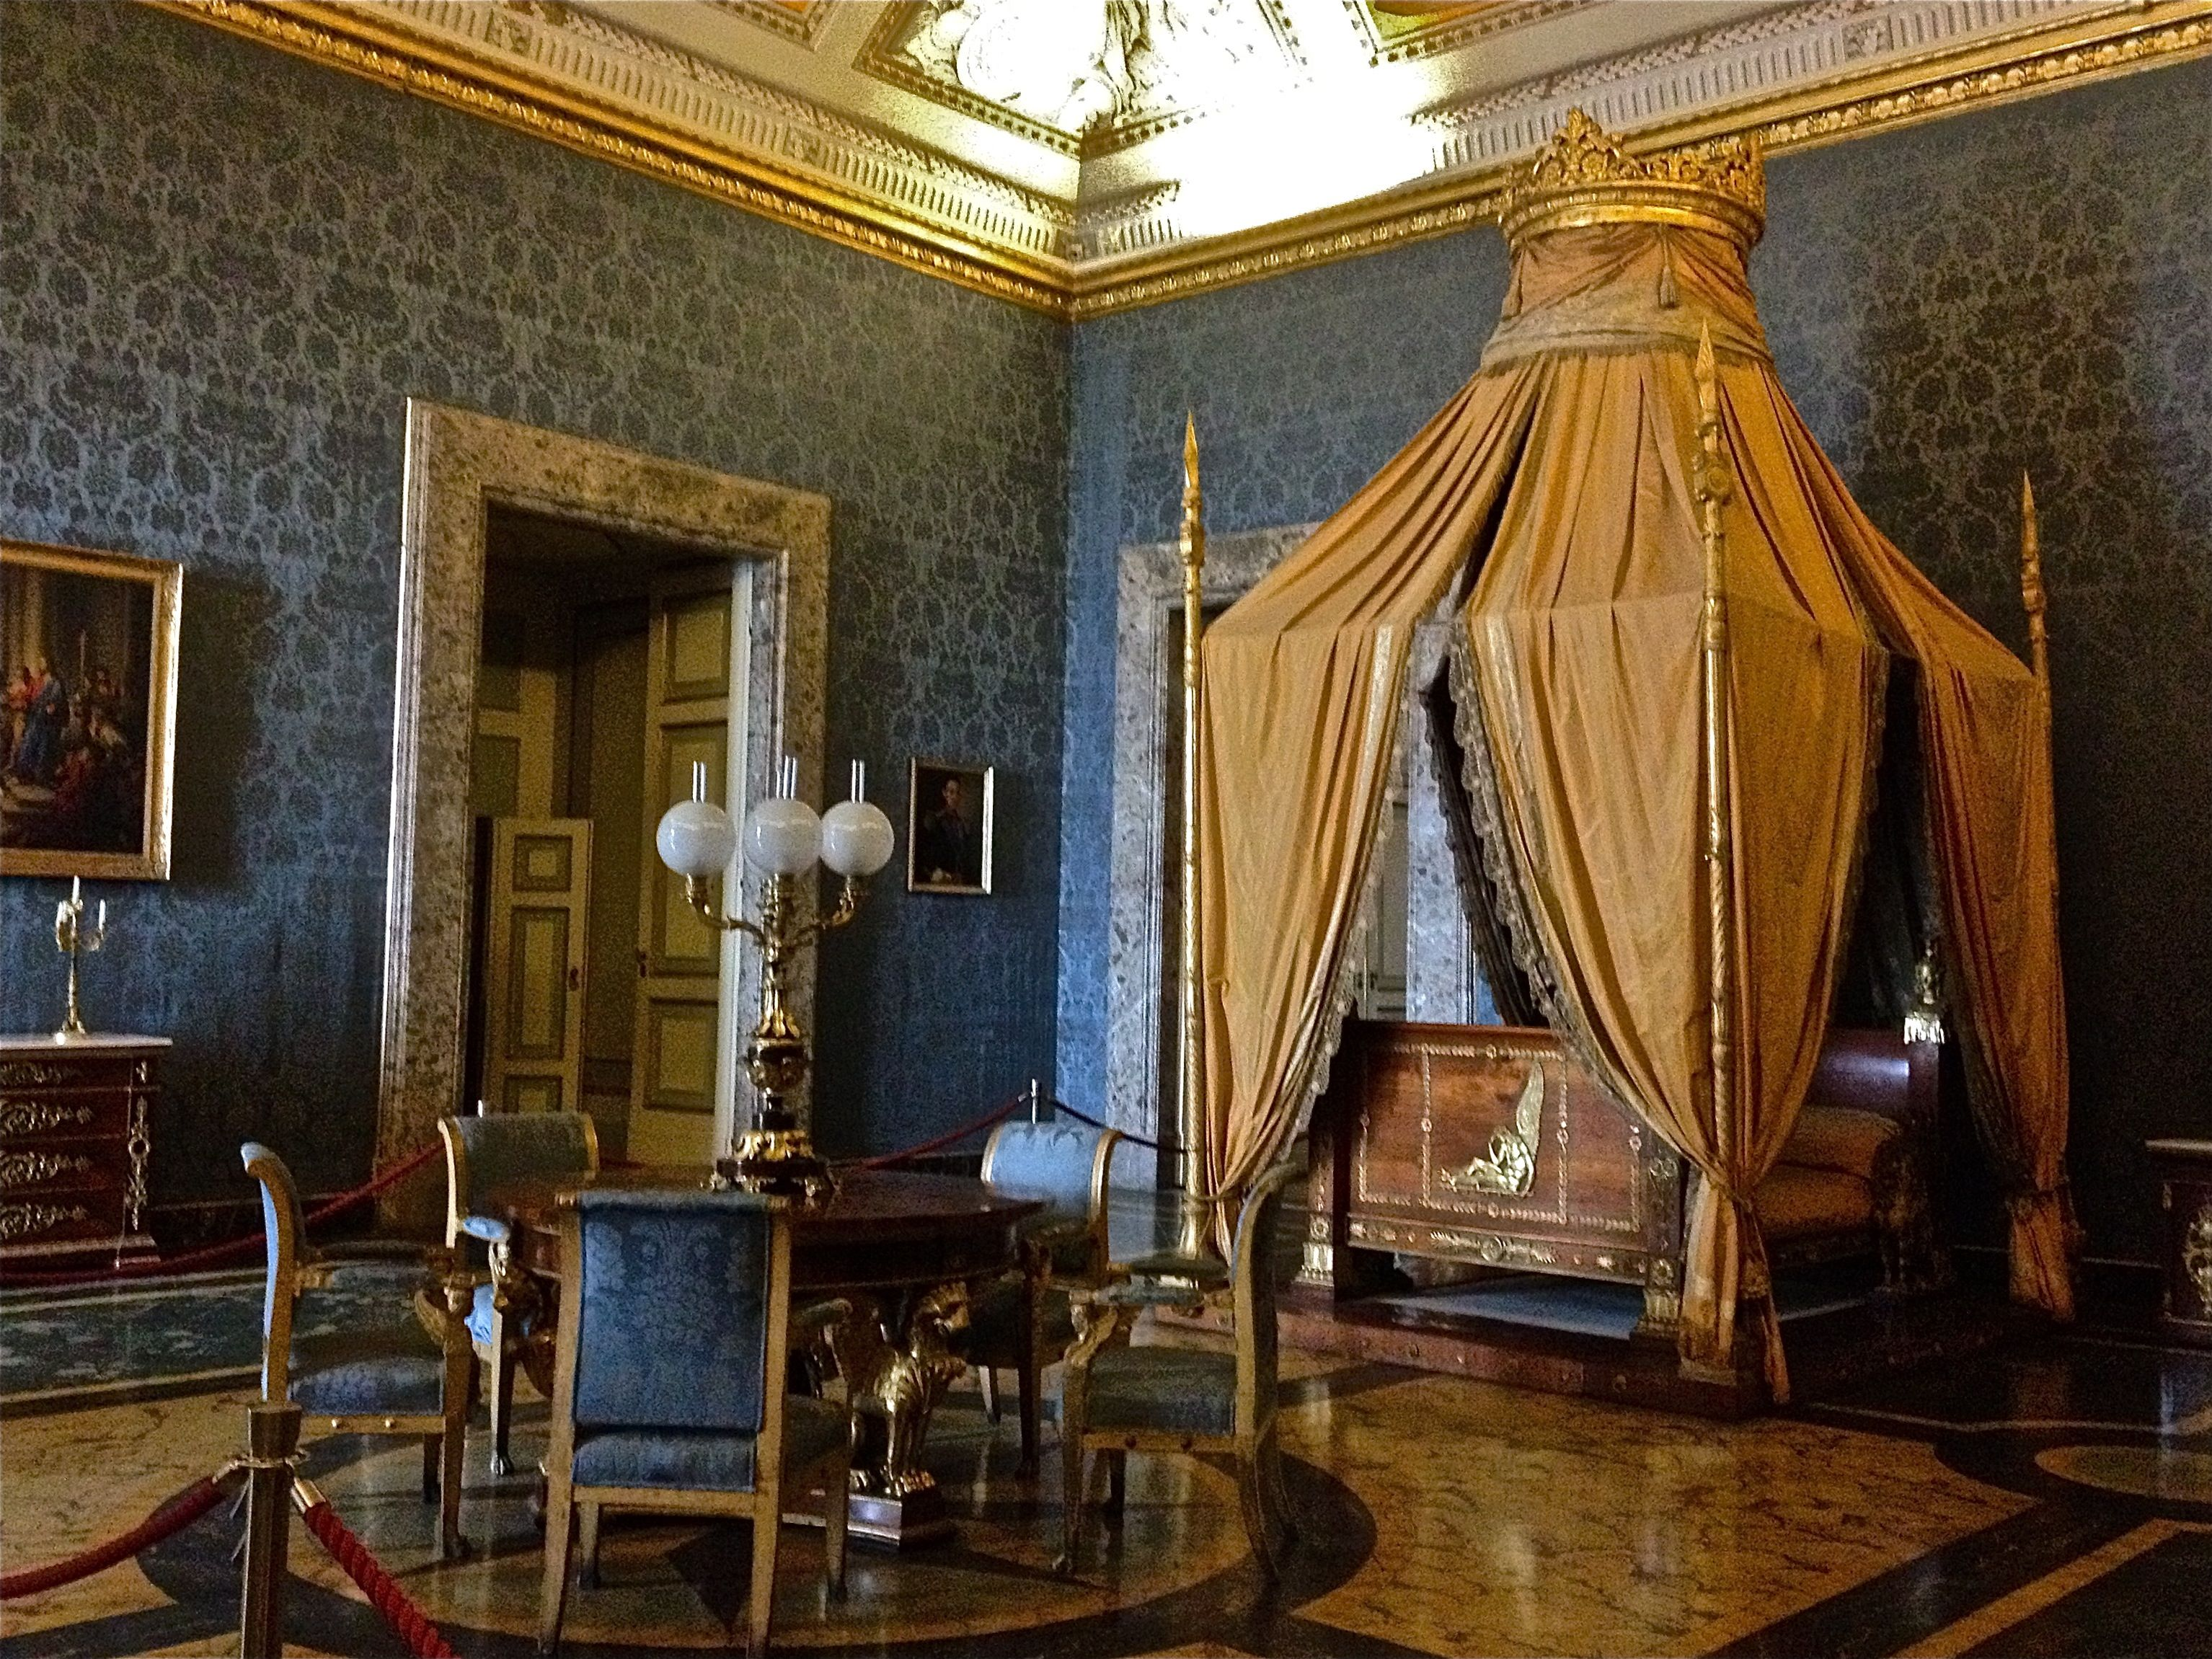 The royal palace in caserta italy still trying to figure out what i can do to get a bed like - Interior designer caserta ...